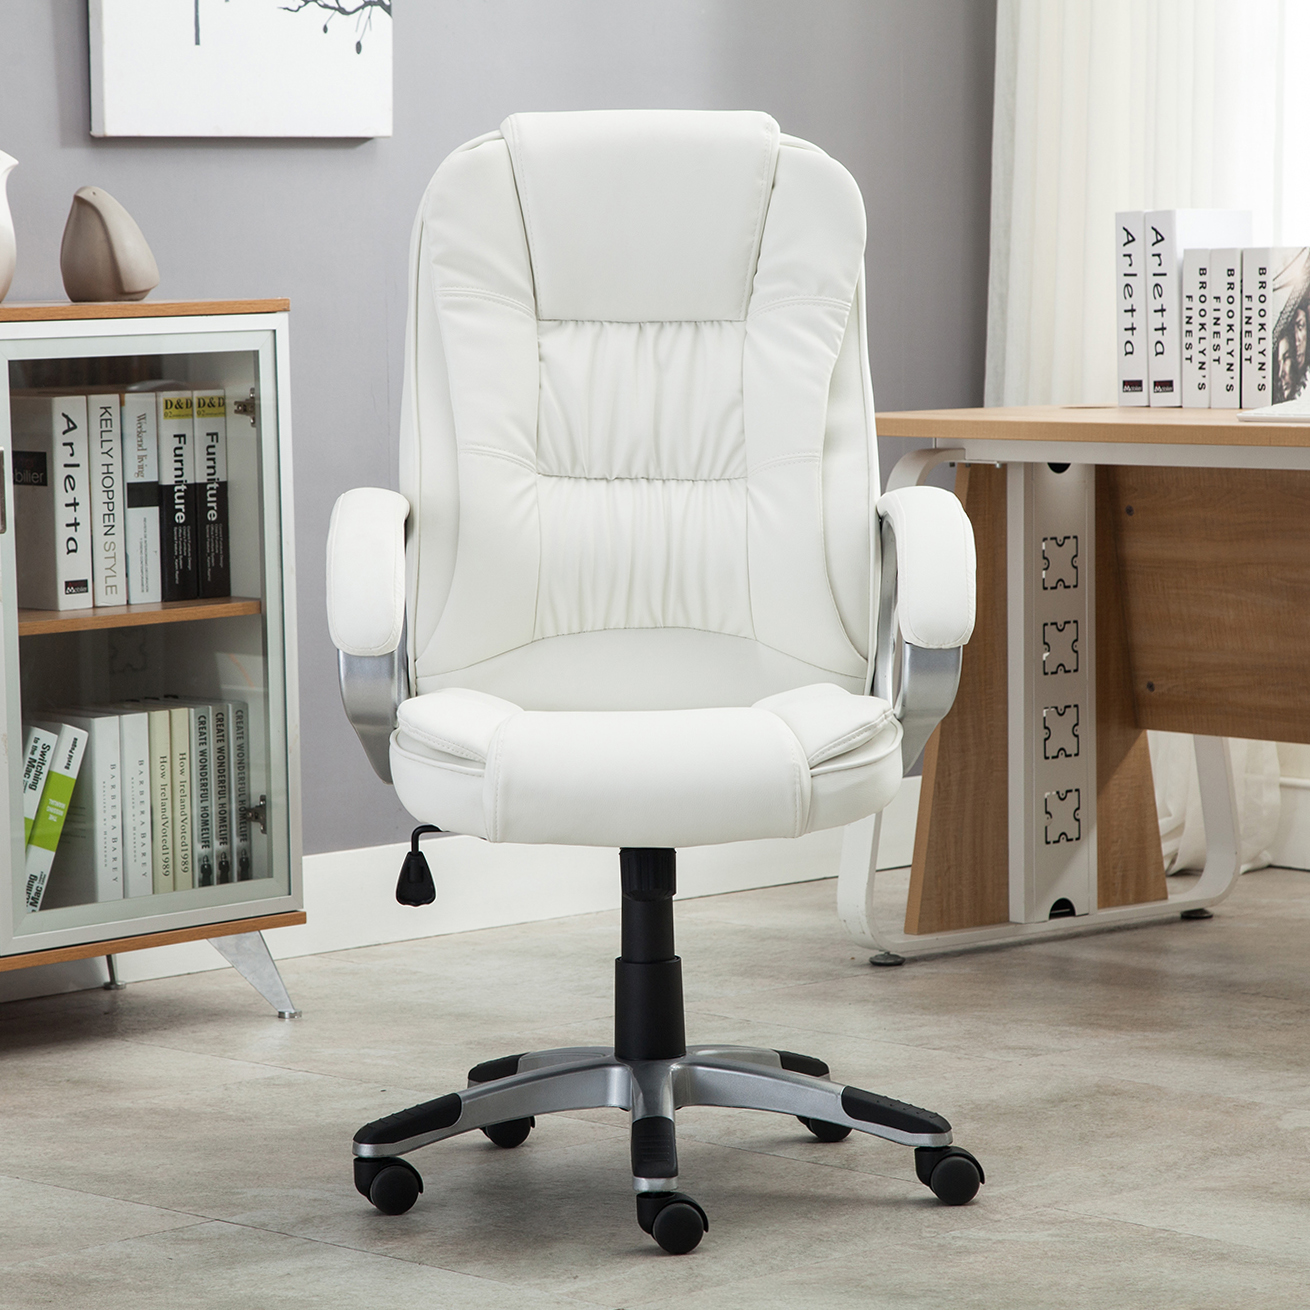 white leather chair white pu leather high back office chair executive 21975 | 048 gm 48098 7